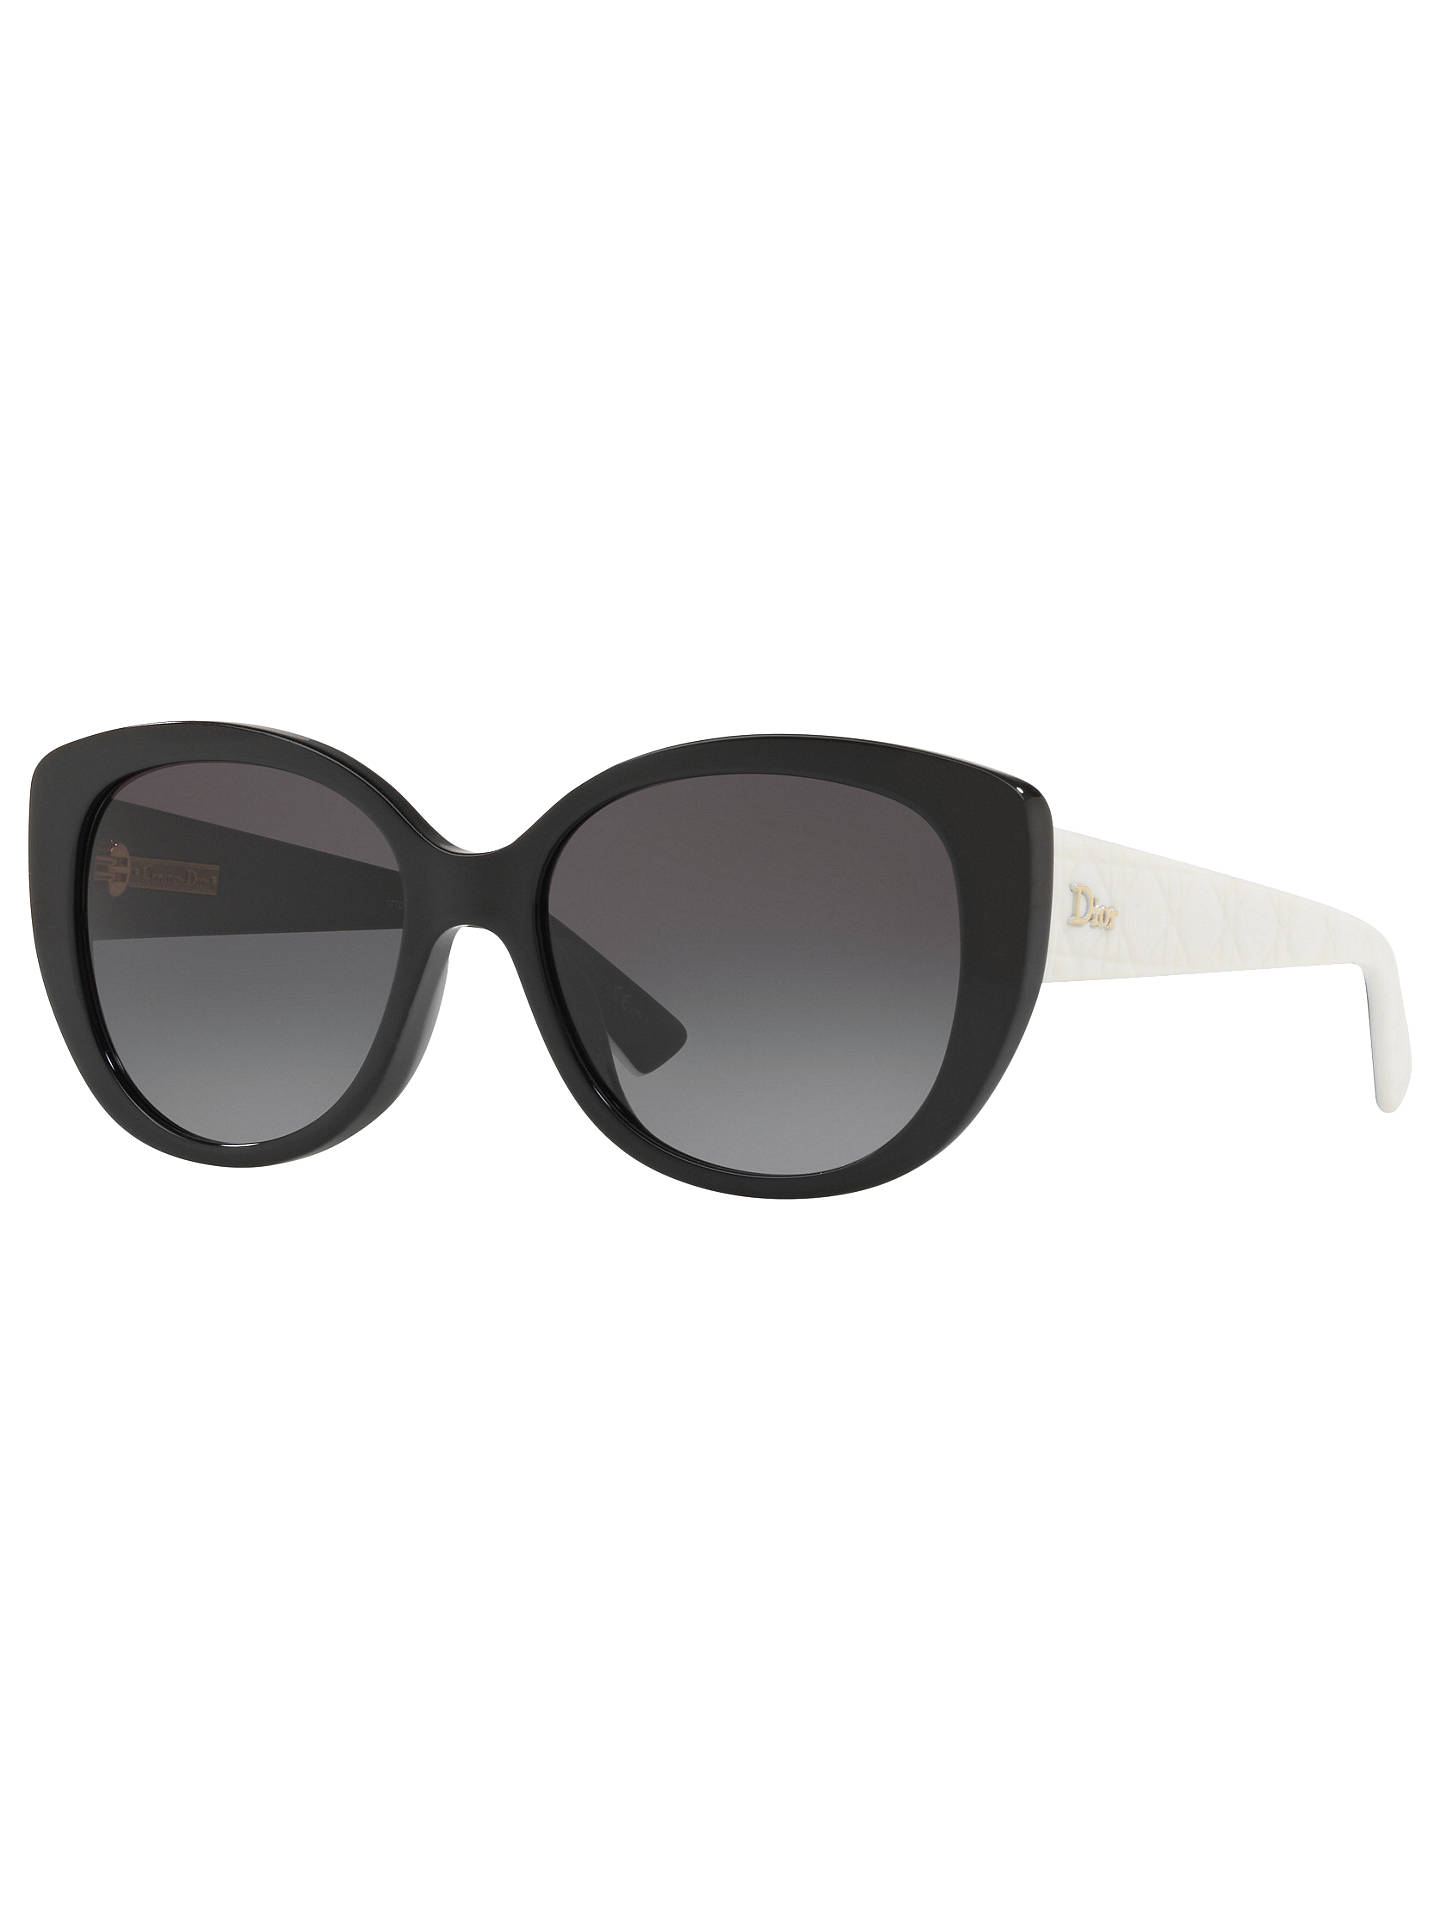 42a7987ef41b Christian Dior DiorLady Oval Sunglasses at John Lewis   Partners